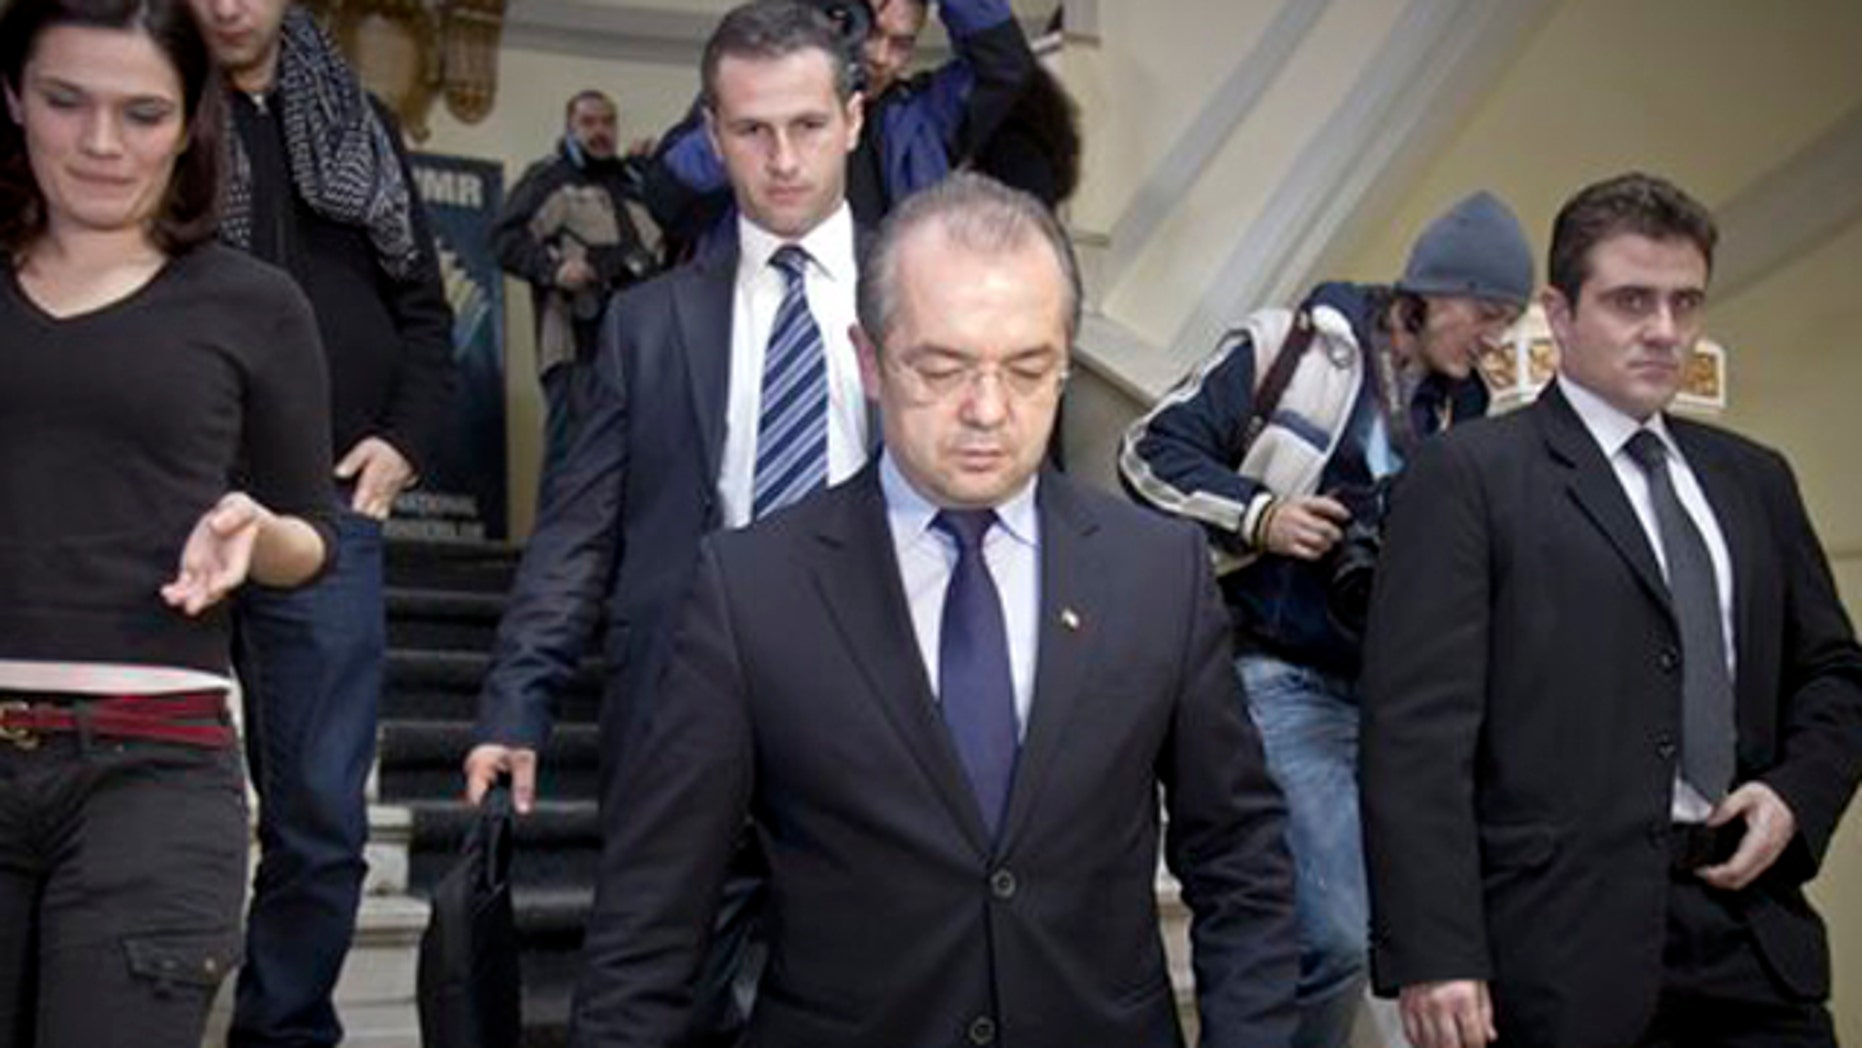 Feb. 6, 2012: Romanian Premier Emil Boc, front center, leaves the headquarters of the ruling Democratic Liberal party in Bucharest, Romania, after announcing his immediate resignation with his government on Monday, saying he wanted to protect the stability of the country.